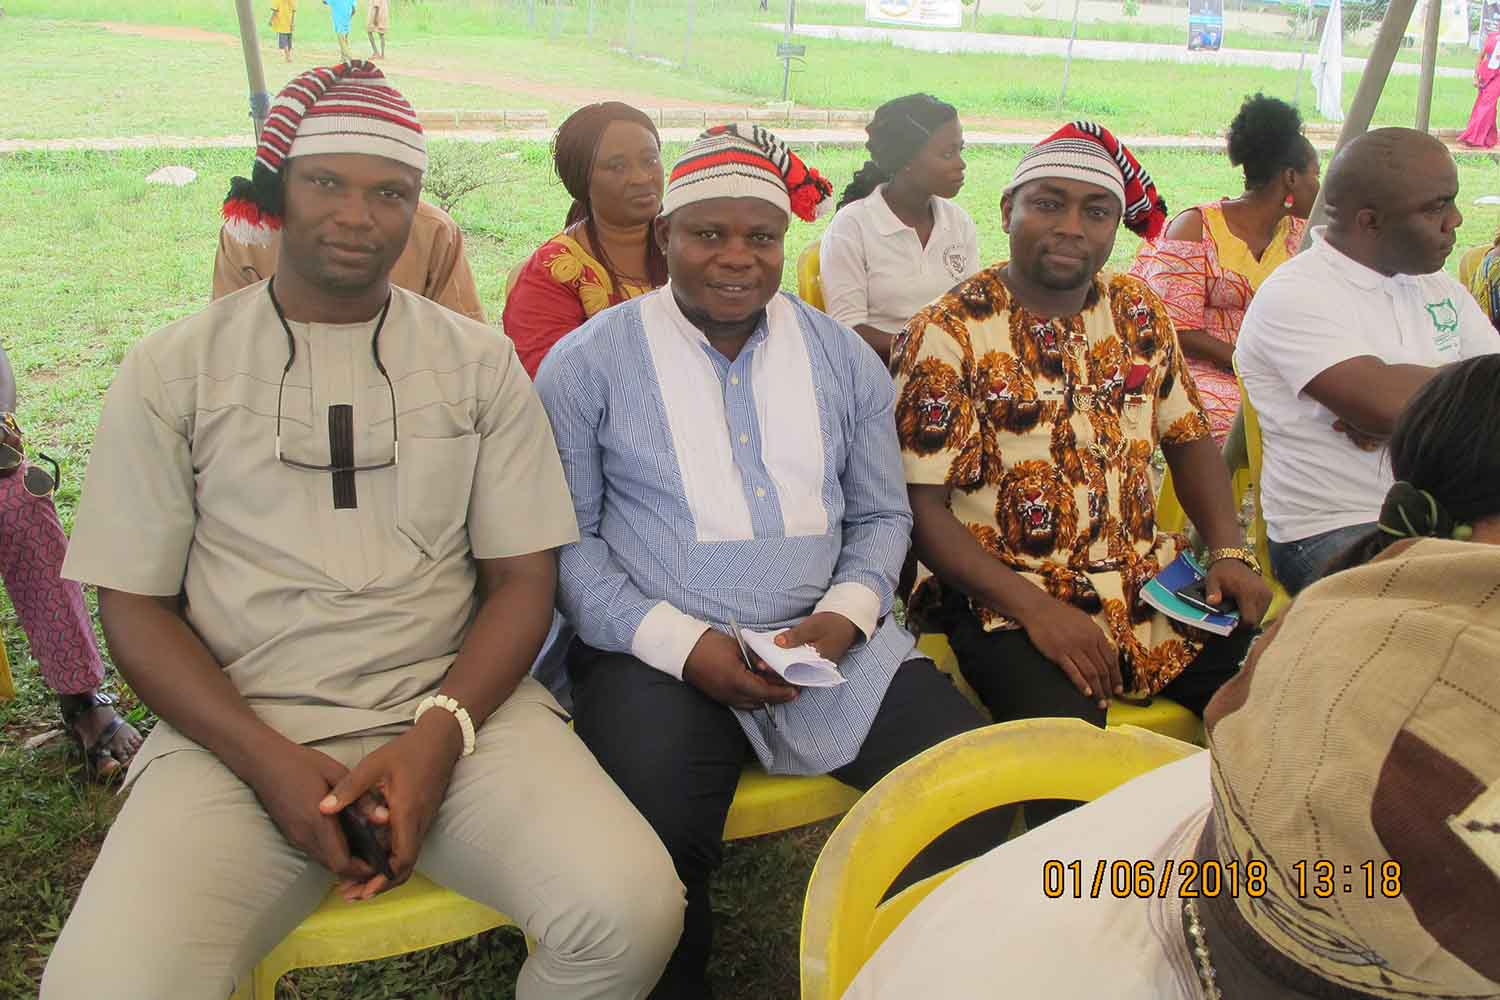 Cross section of participants during the 2018 Igbo Cultural Day Festival